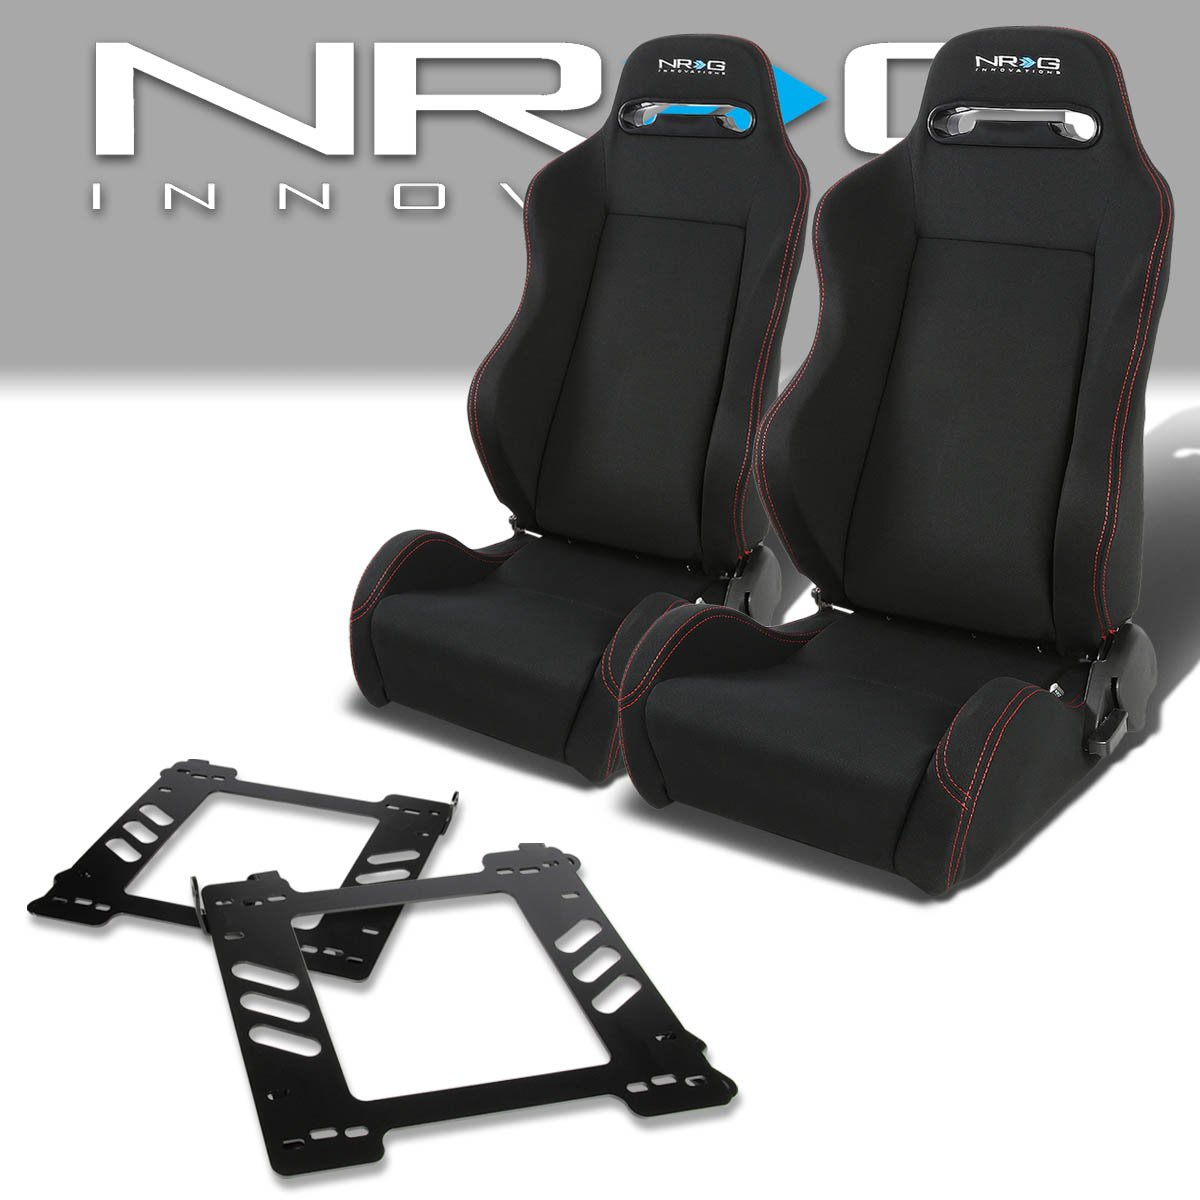 Pair of RSTRLGBK Racing Seats+Mounting Bracket for BMW E36 3-Series Coupe Auto Dynasty